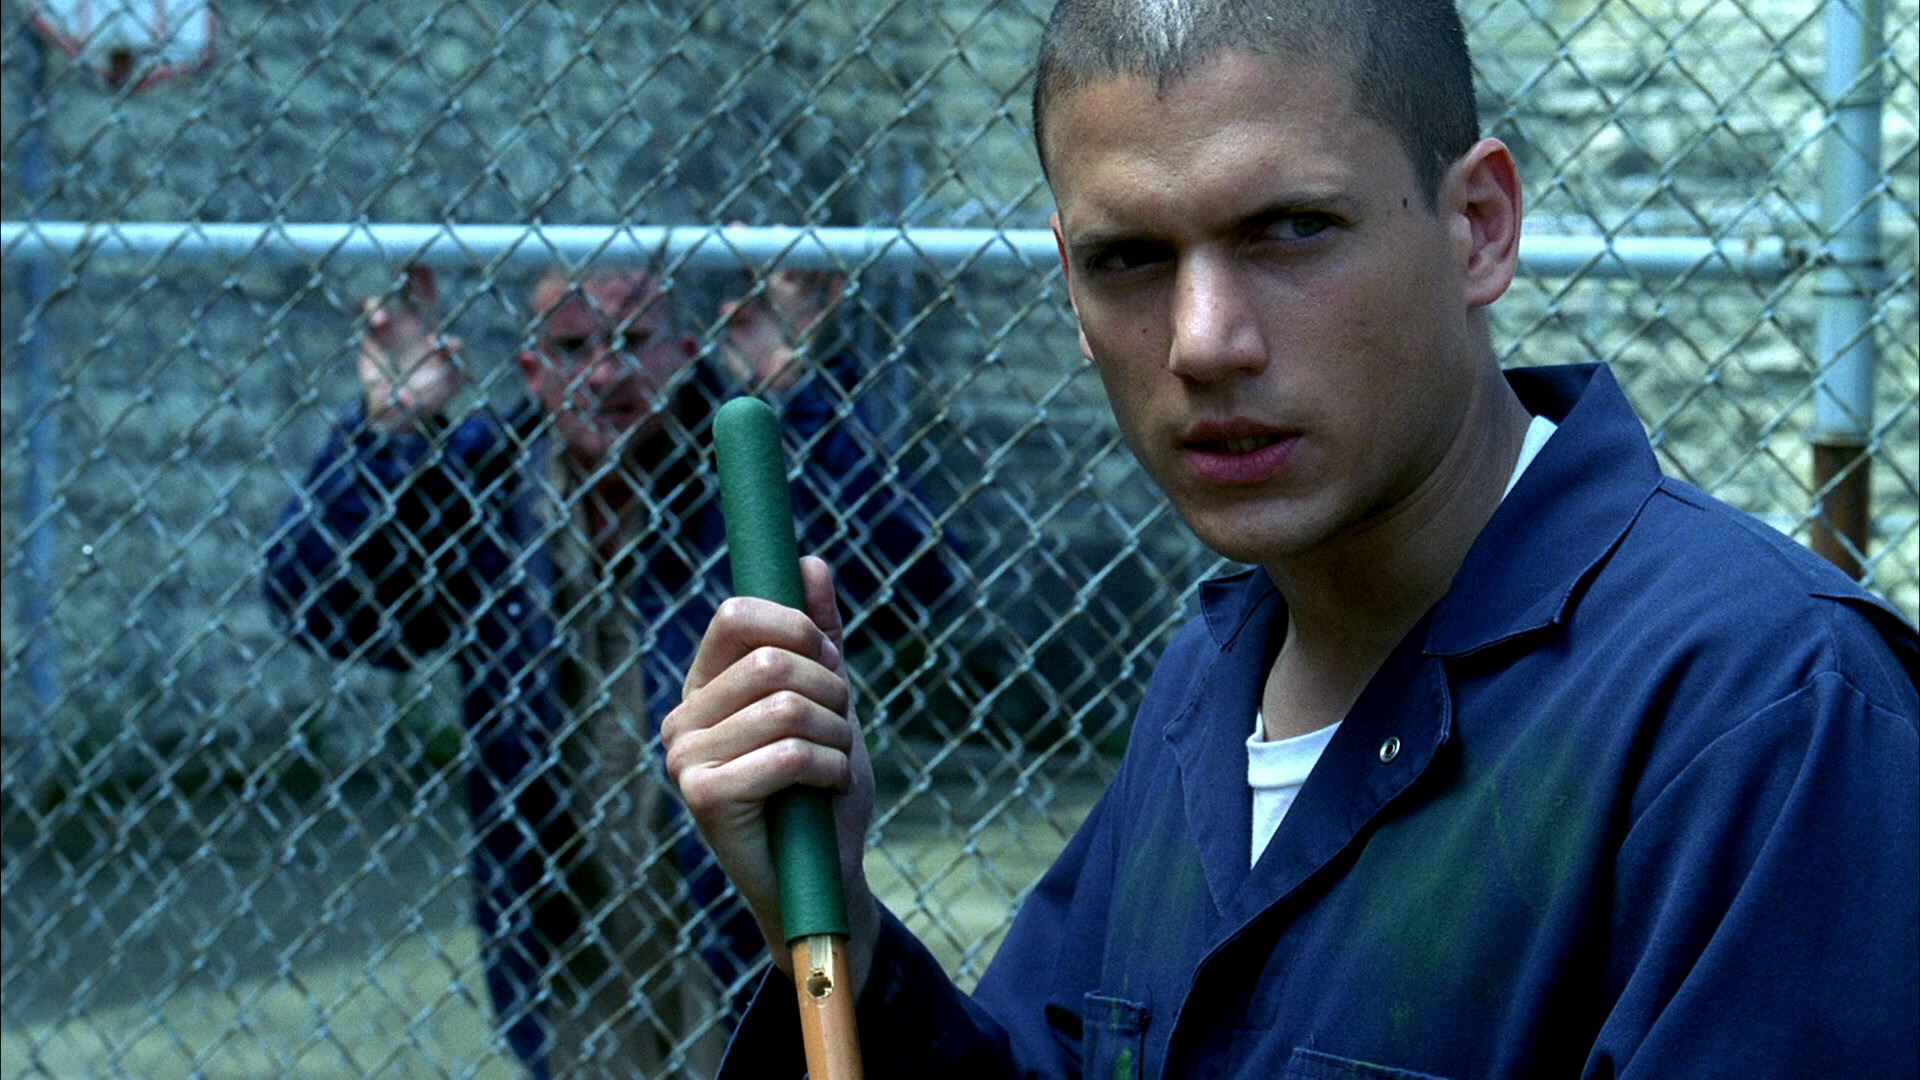 1920x1080 Wentworth Miller Prison Break HD Desktop Wallpaper